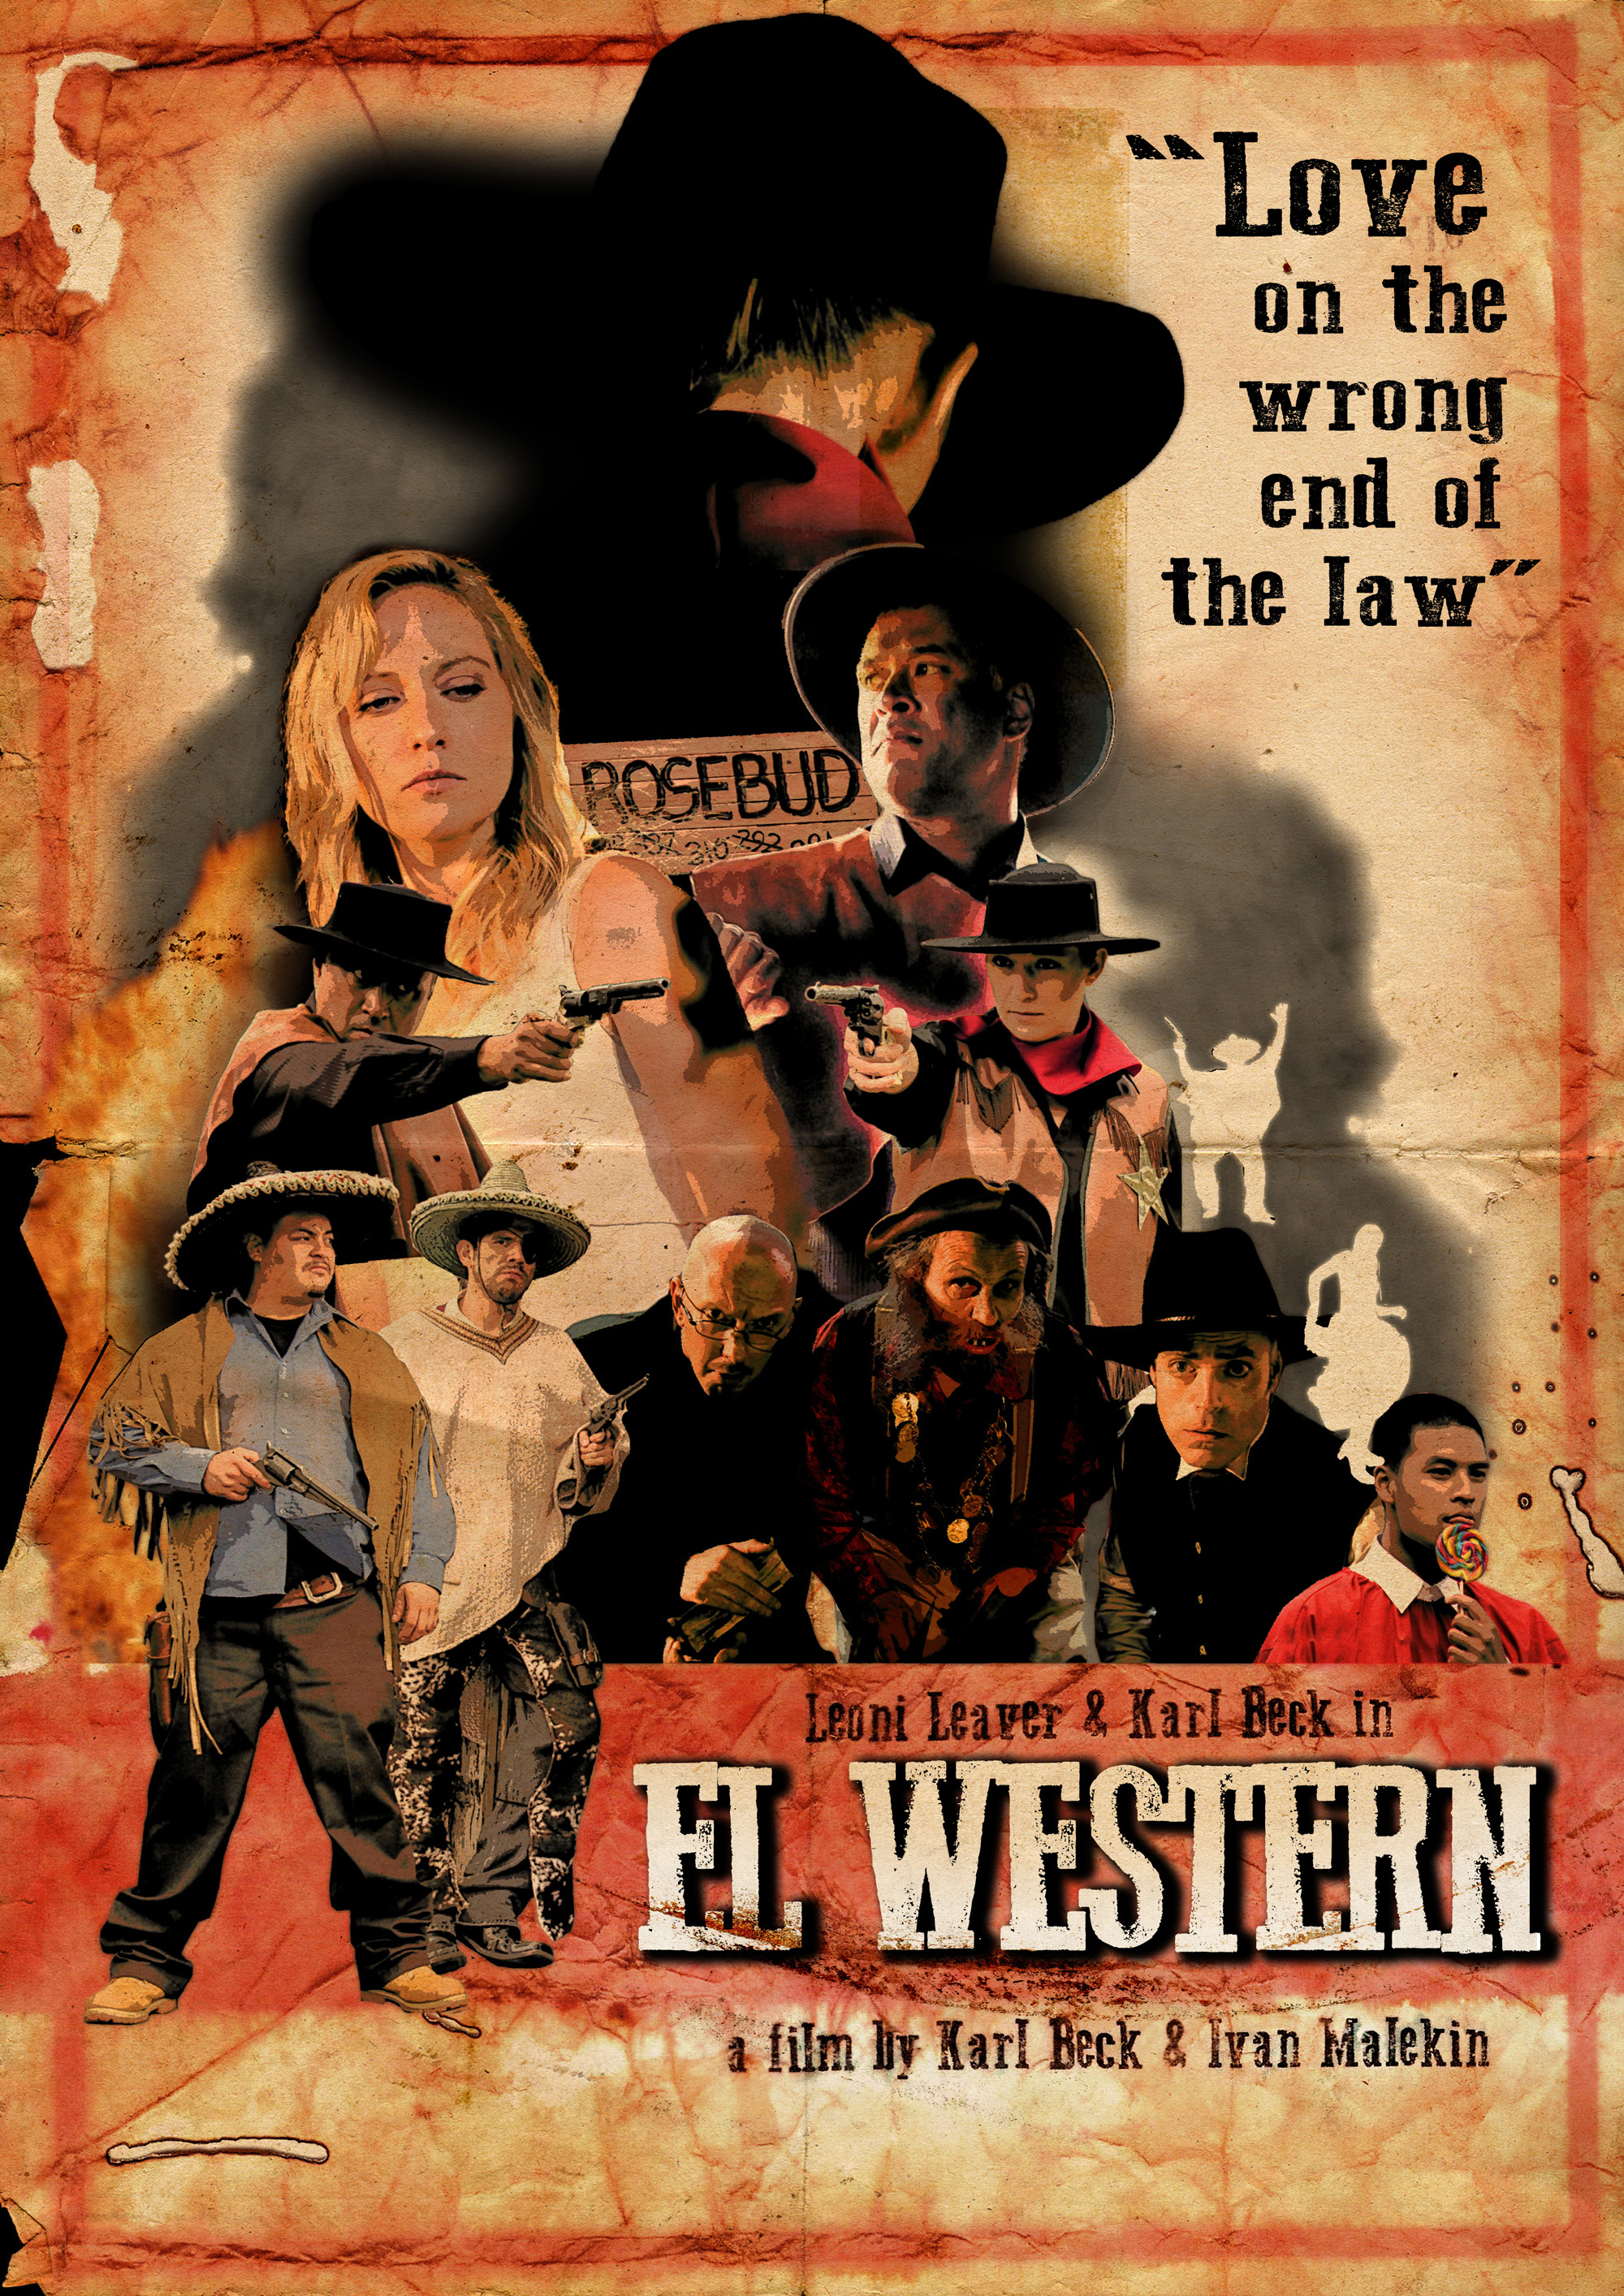 In the Wild West a mismatched but love-struck pair hurtle towards a high-noon showdown. - El Bandito is the meanest Mexican in the West and he has the town of Rosebud in a right fright. Only the mysterious Sheriff Dan dares stand against the outlaw.But something is amiss. Dan smells ... nice. Bandito is kind of ... handsome. Could this be love?One thing is for sure, only one man will be left standing.